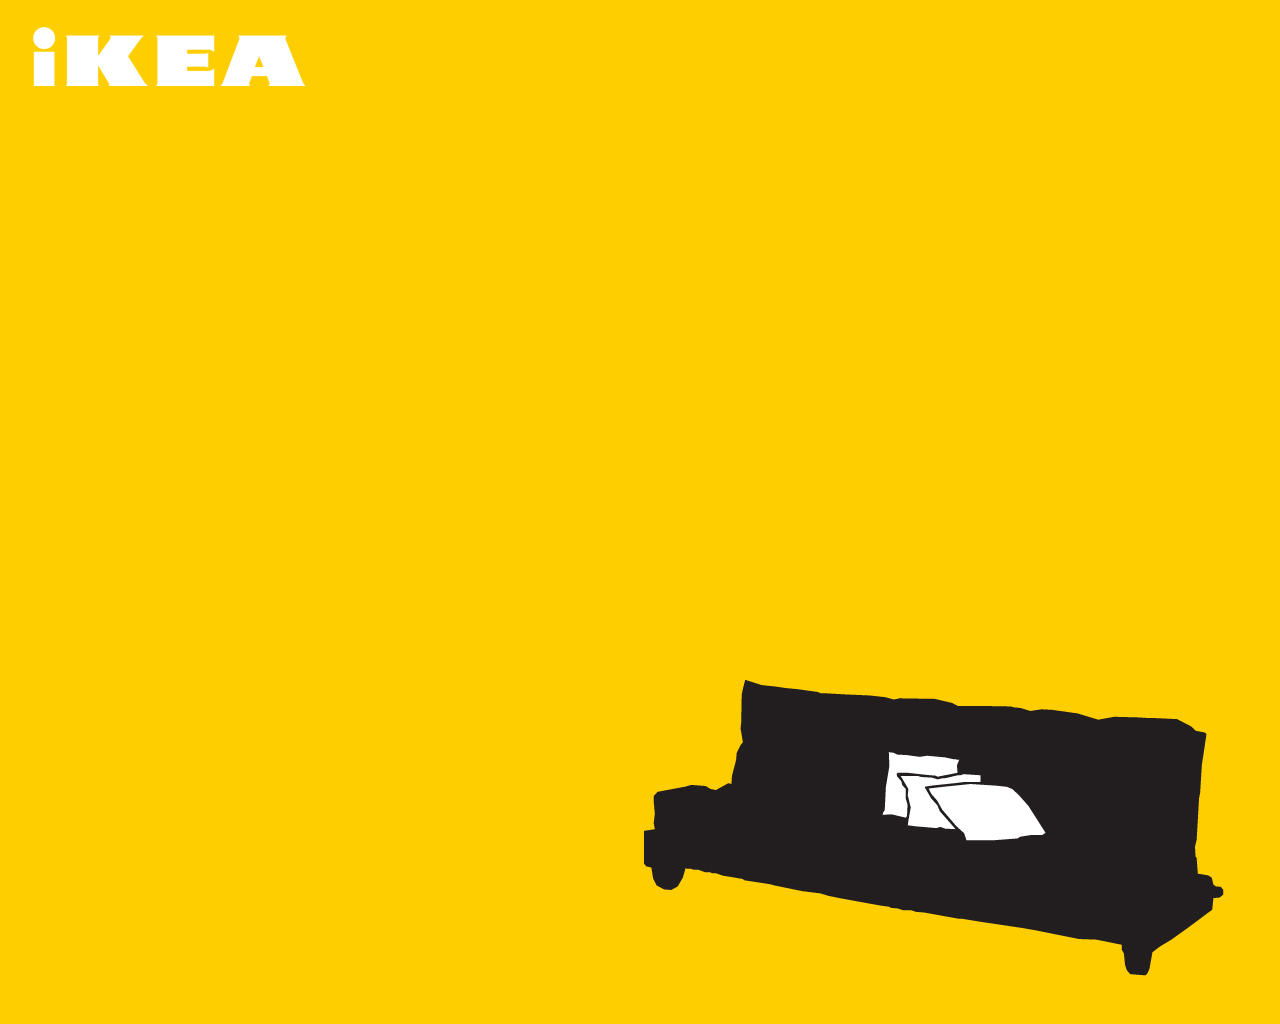 Ikea wallpaper